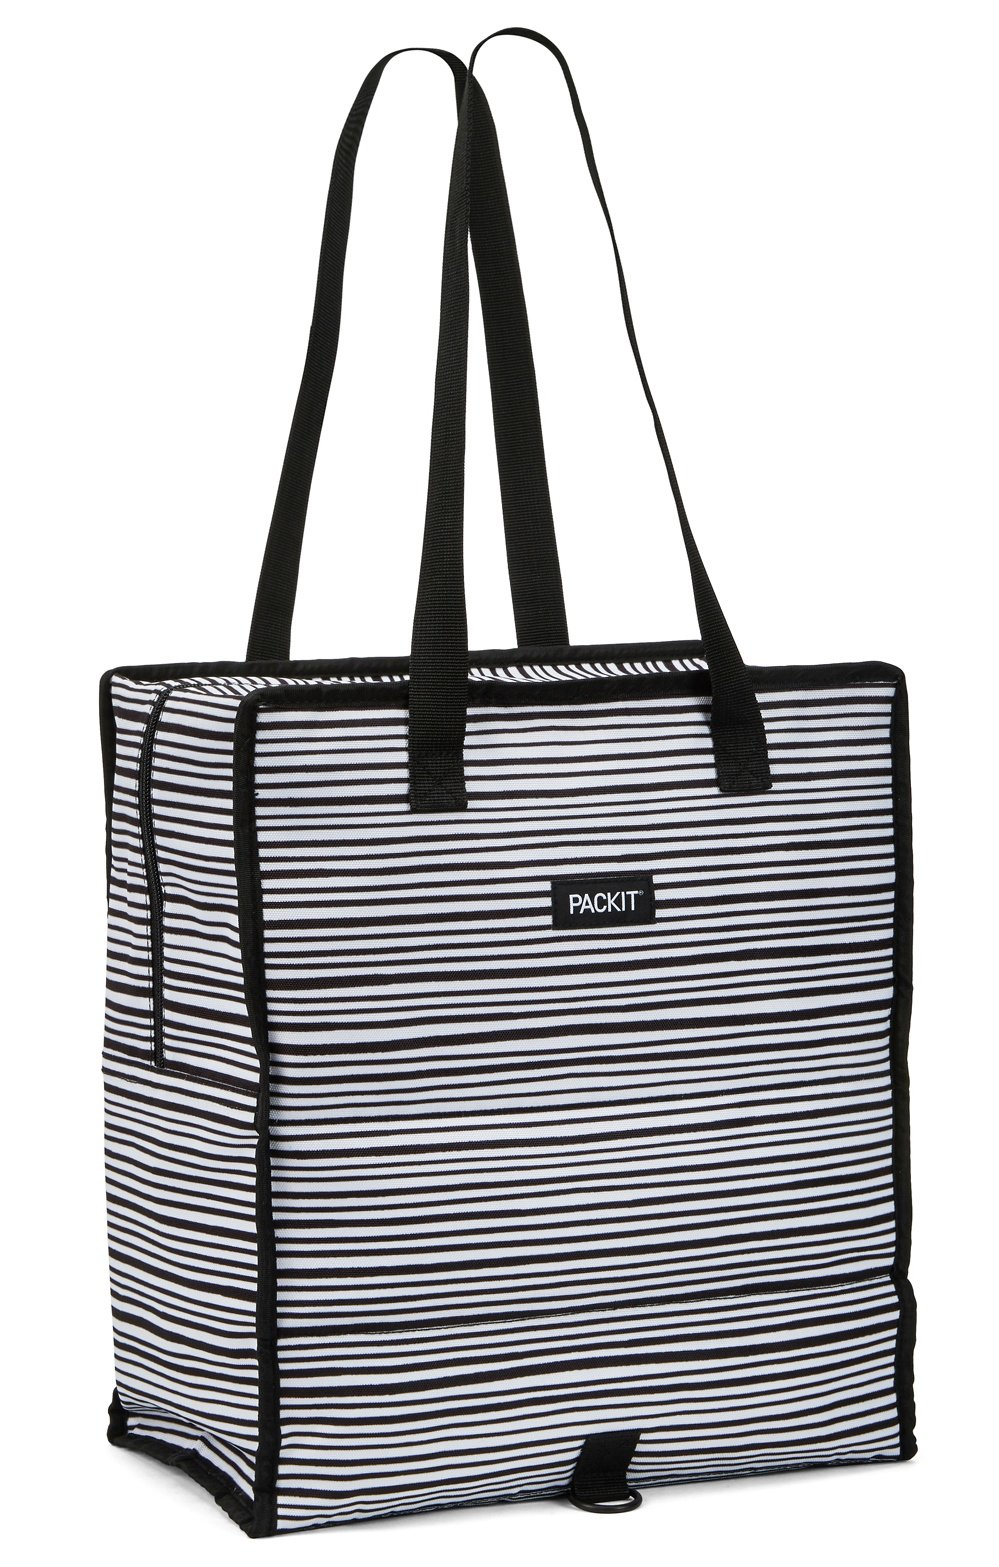 PackIt Freezable Grocery Shopping Bag with Zip Closure, Wobbly Stripes by PackIt (Image #3)